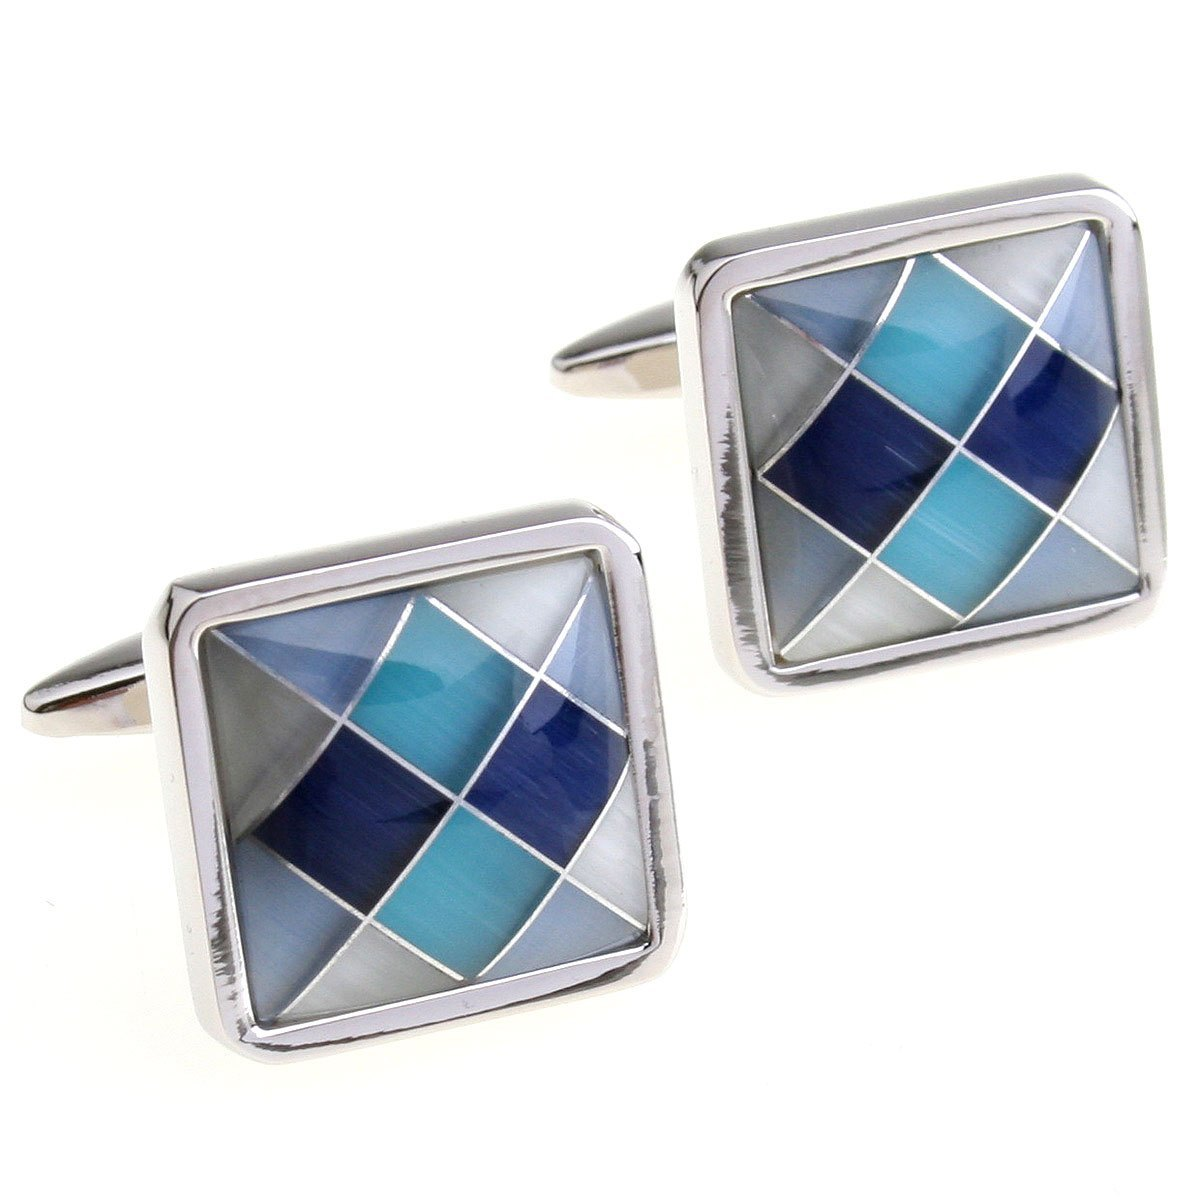 Cufflinks Retail Blue black shell square cufflinks 150817 free shipping+free gift box